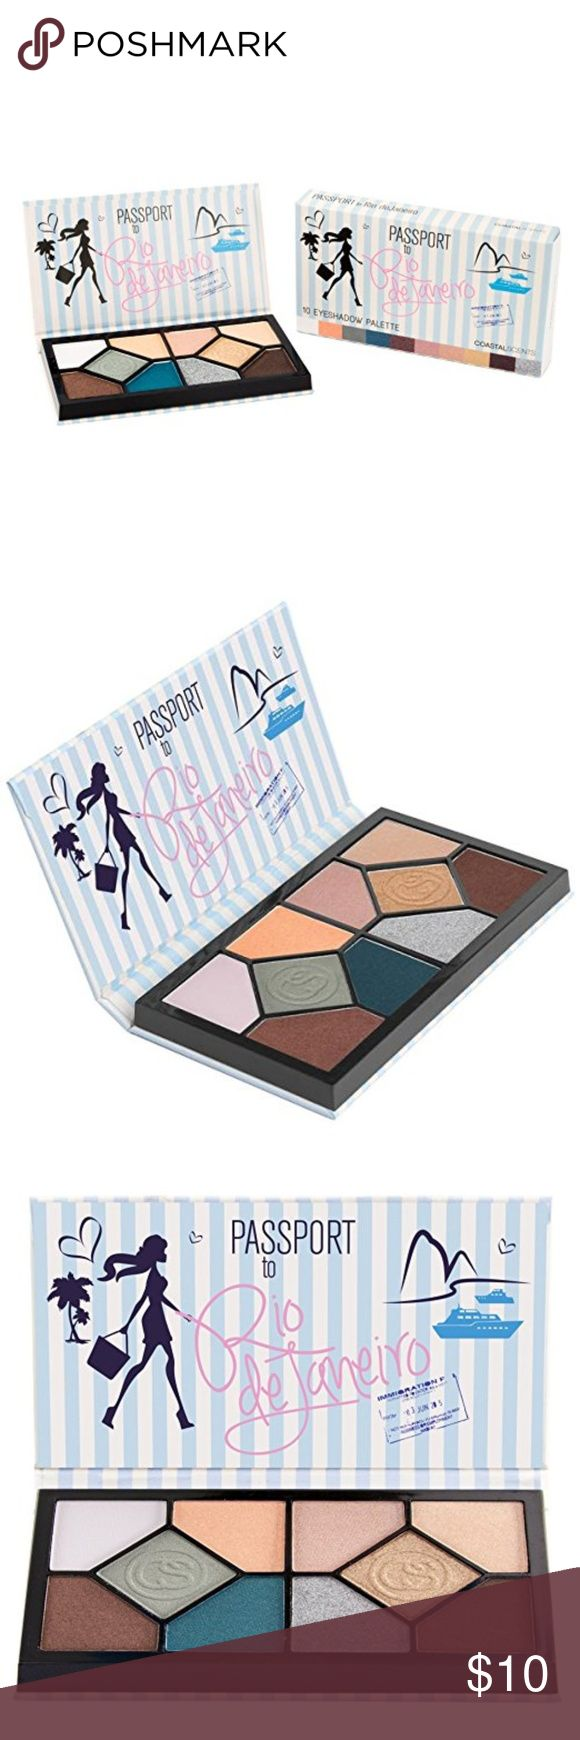 Coastal Scents Passport to Rio de Janeiro Palette Live it up and learn to samba during Carnival or relax on the shore among the surf and sun in this locale famous for fun.  10 customizable eyeshadow colors Convenient and portable palette Includes matte and shimmer Eyeshadows Coastal Scents Makeup Eyeshadow